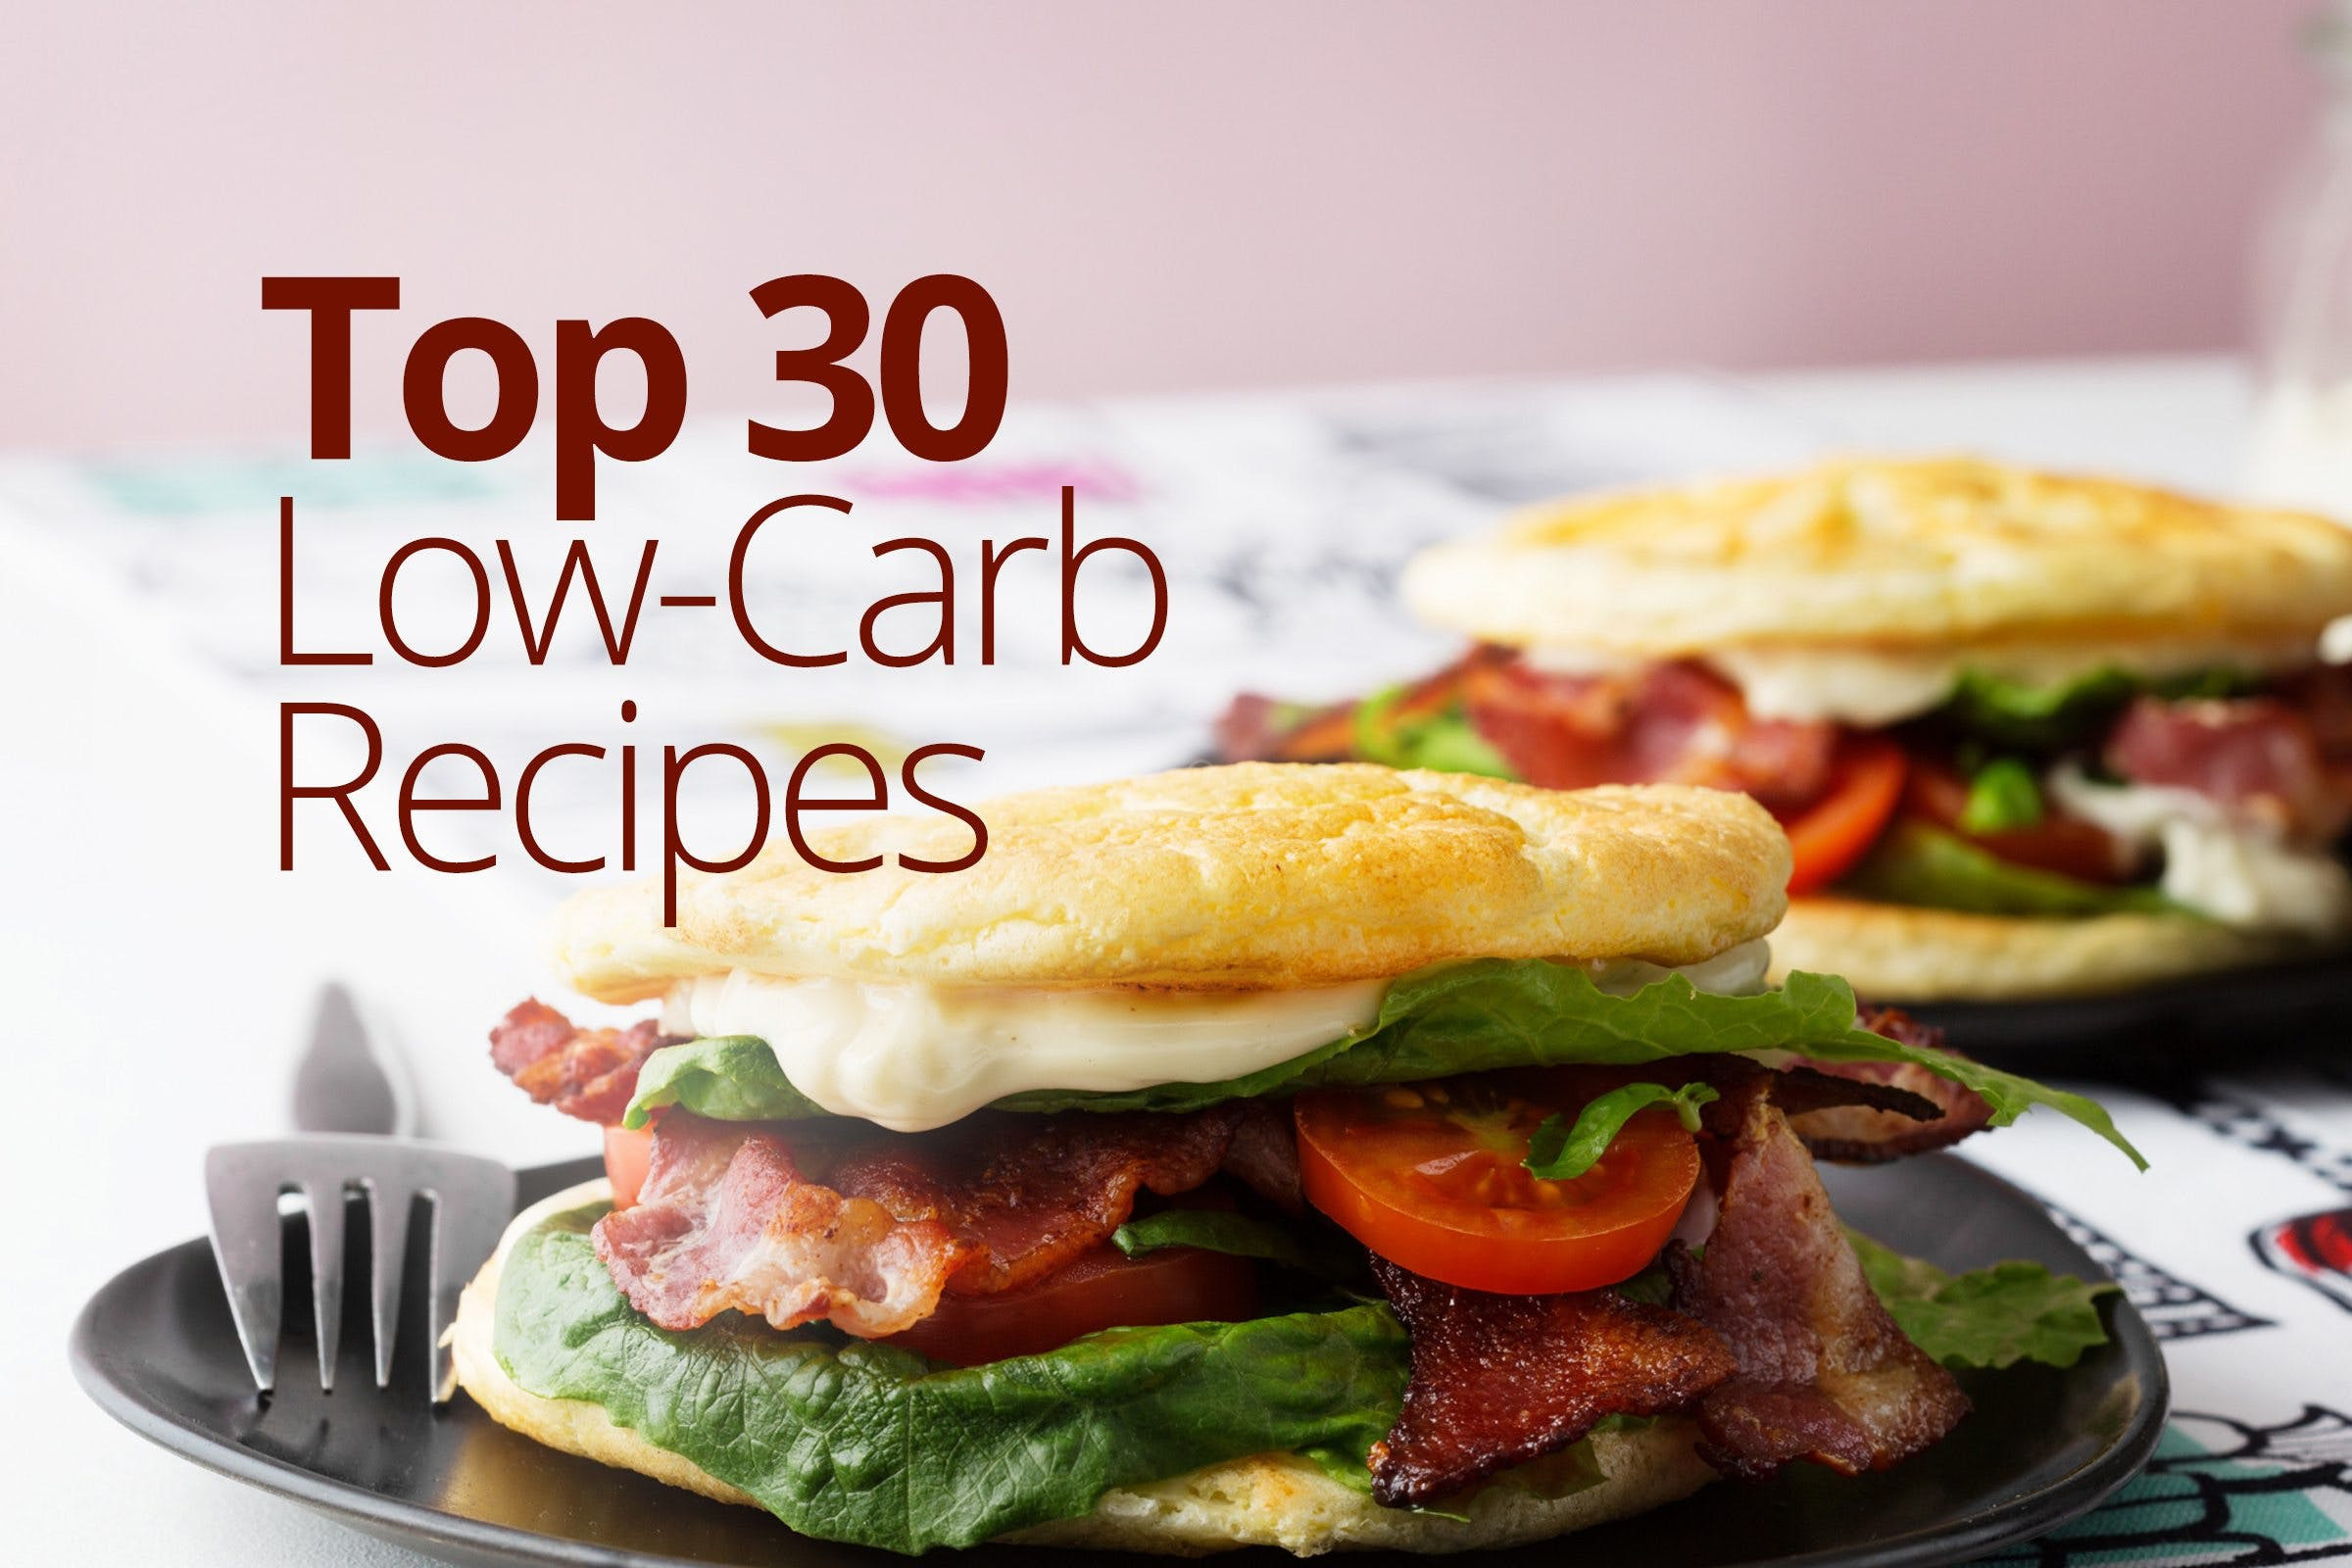 Low Carb Diet Recipes  Top 30 Low Carb Recipes Simple & Delicious Inspiration